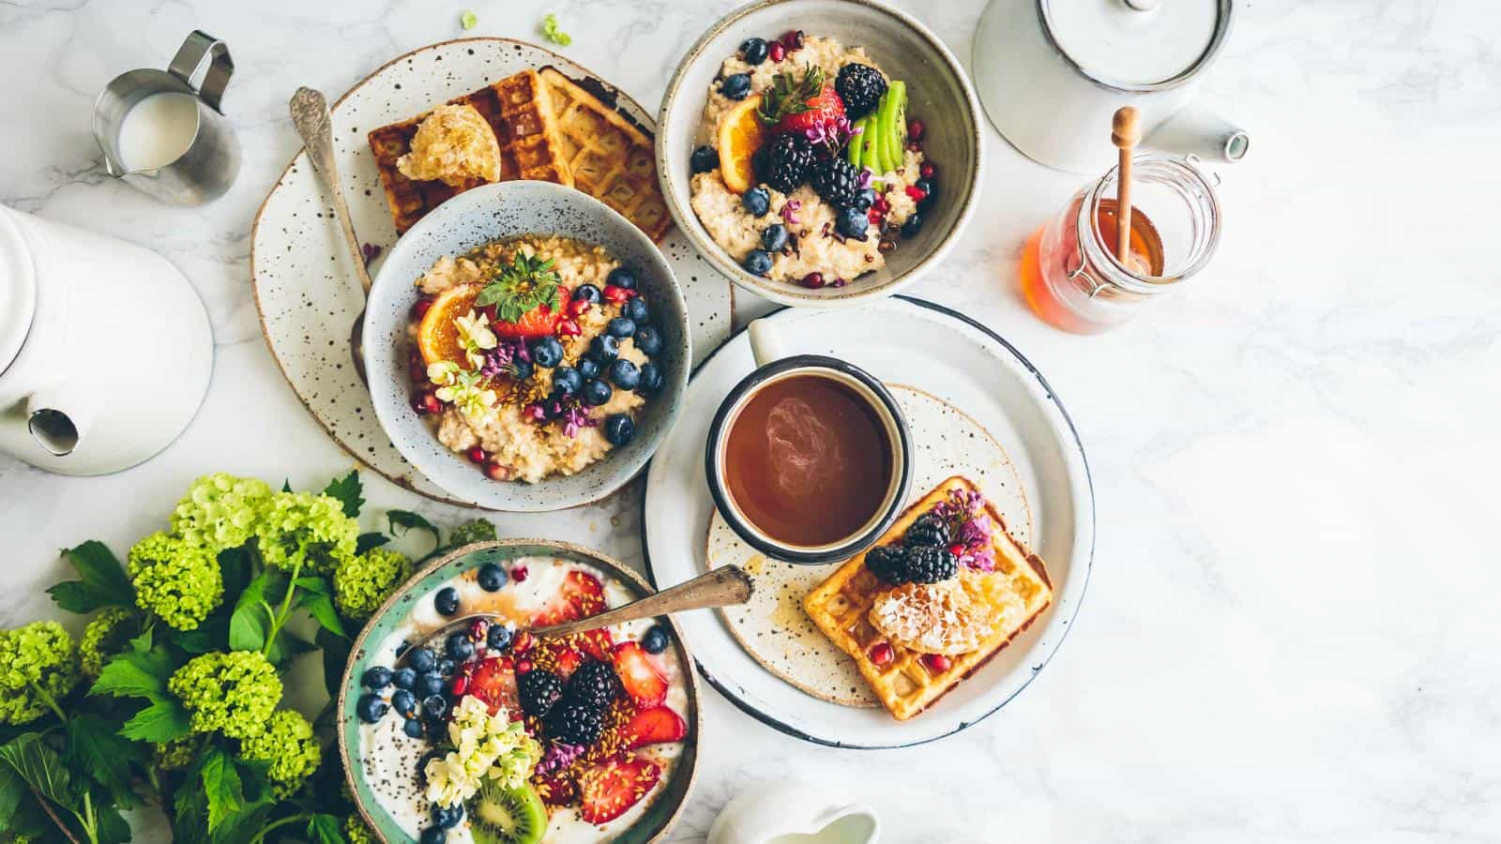 Mornings can be chaotic, but breakfast is worth finding time for.